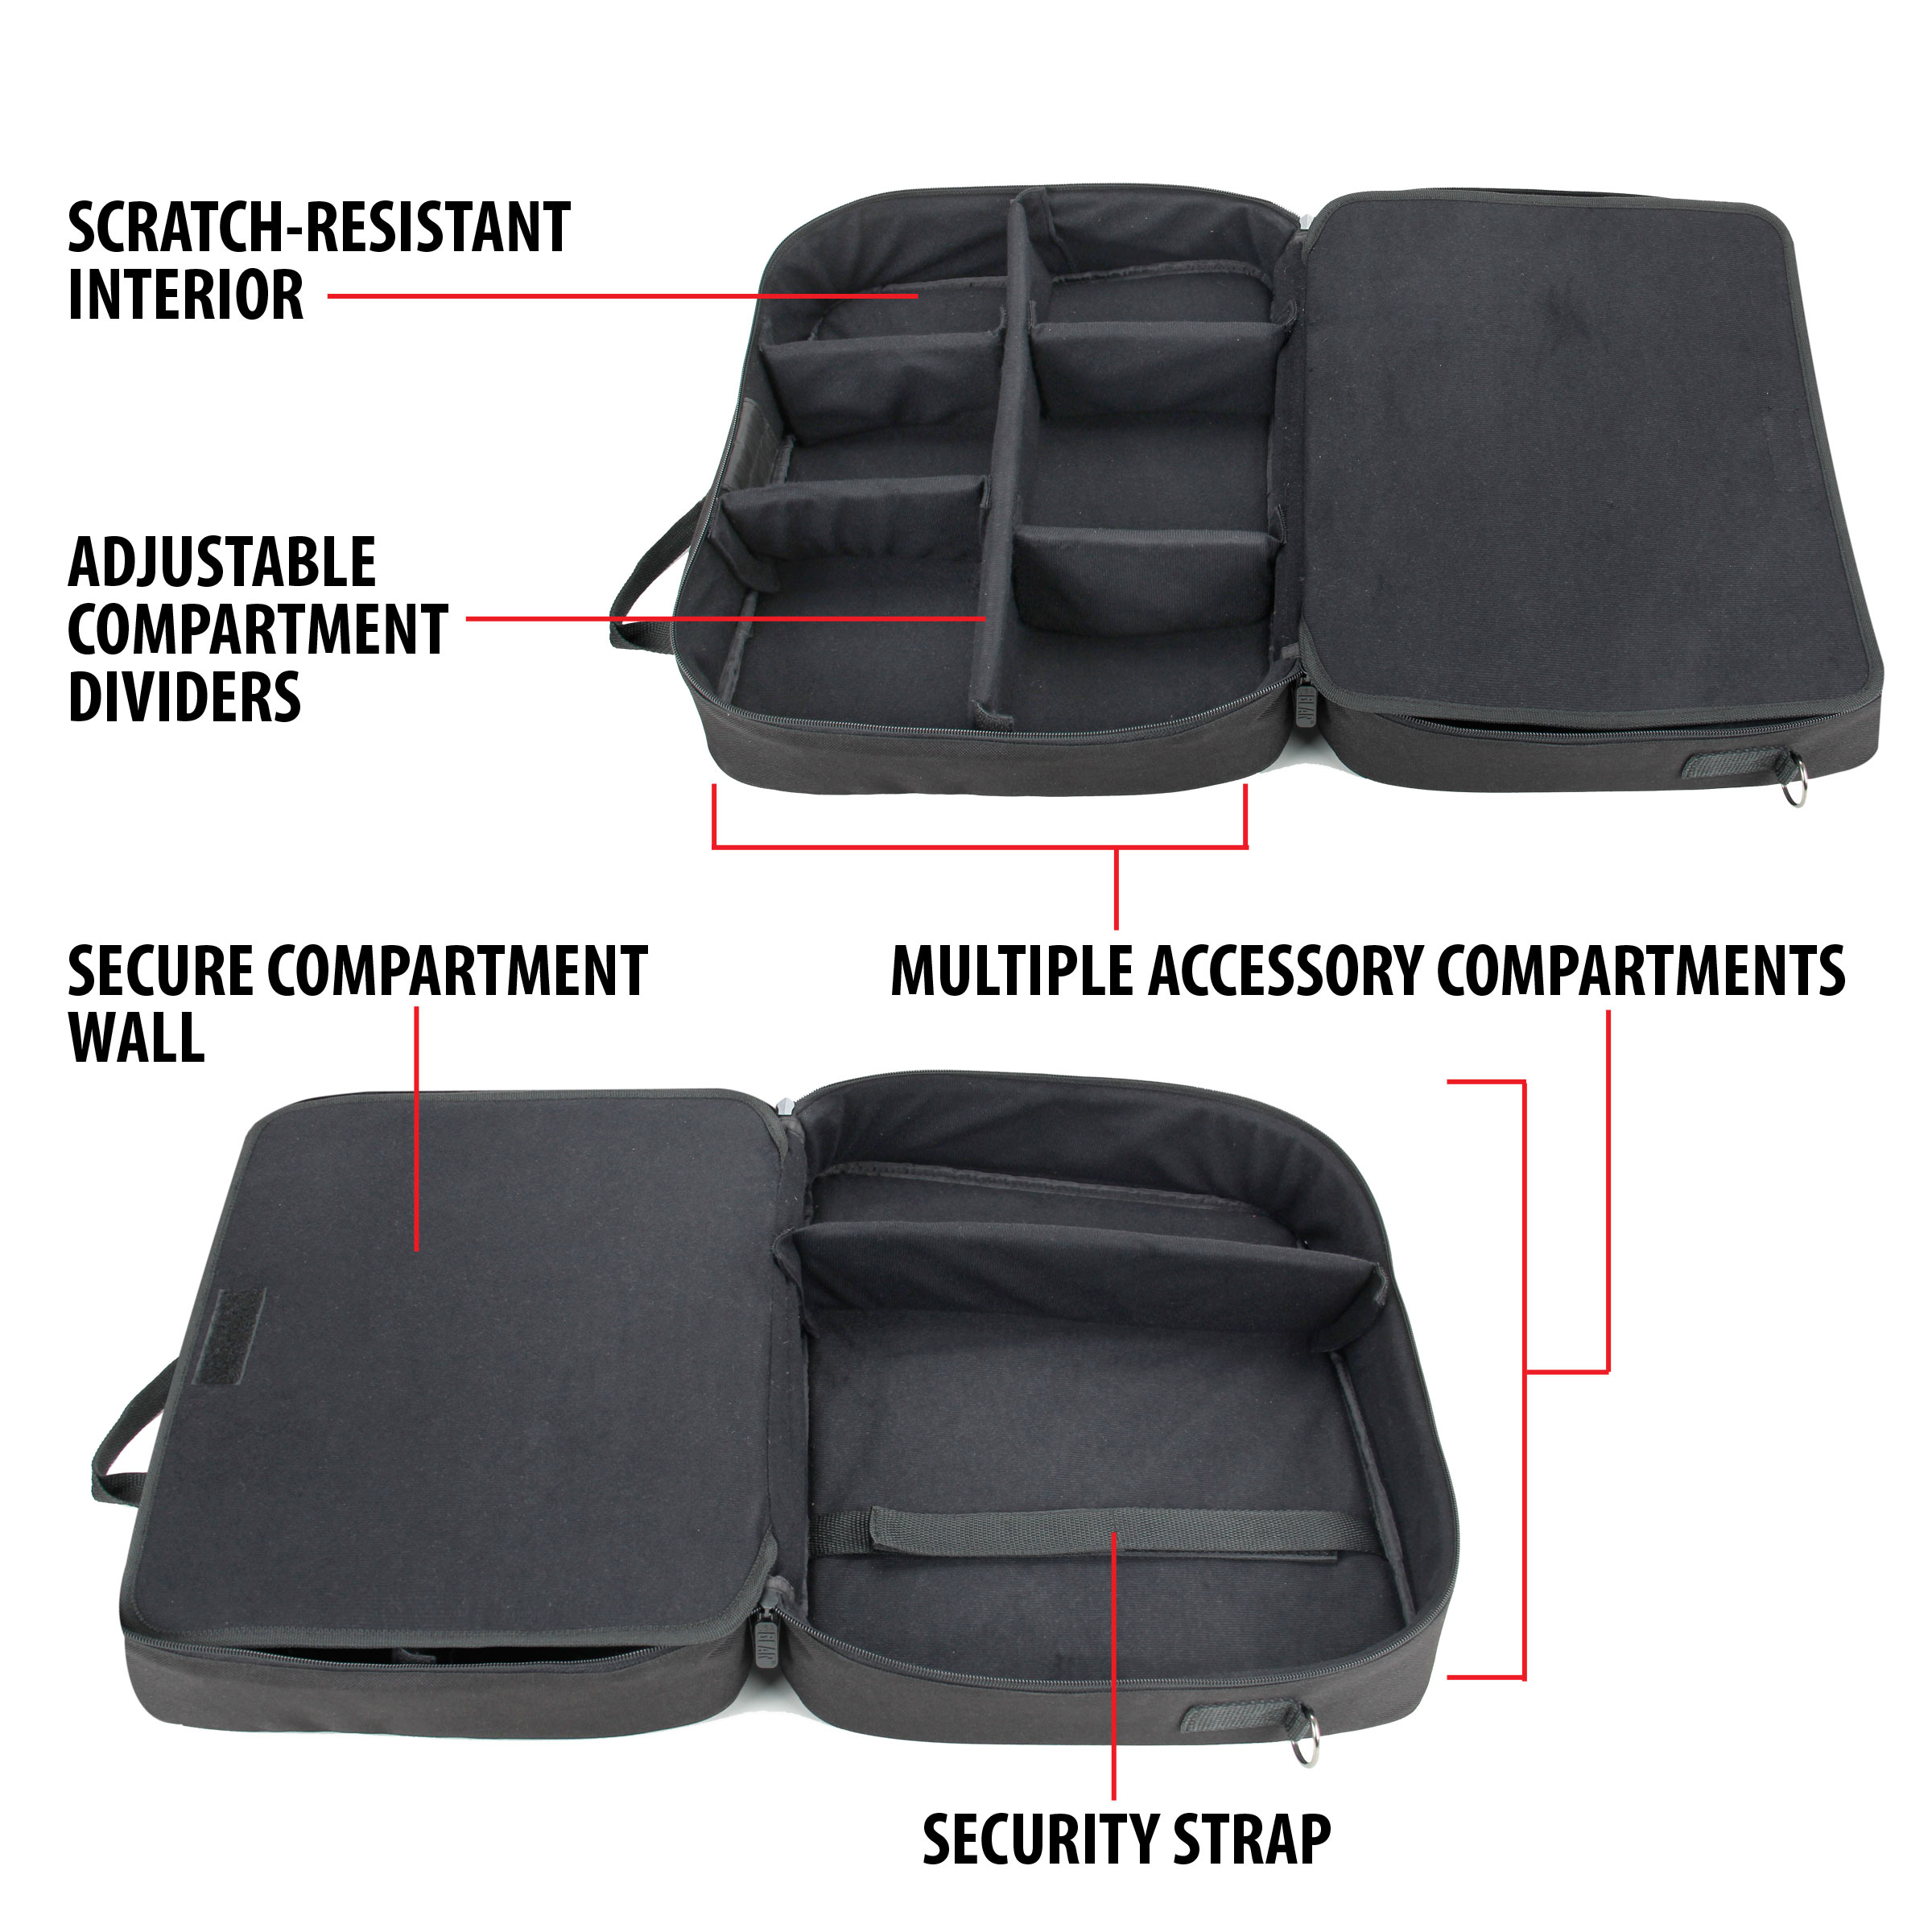 USA Gear Toughbook Travel Case w/Carrying Strap , Scratch-Resistant Lining & Adjustable Compartments 3